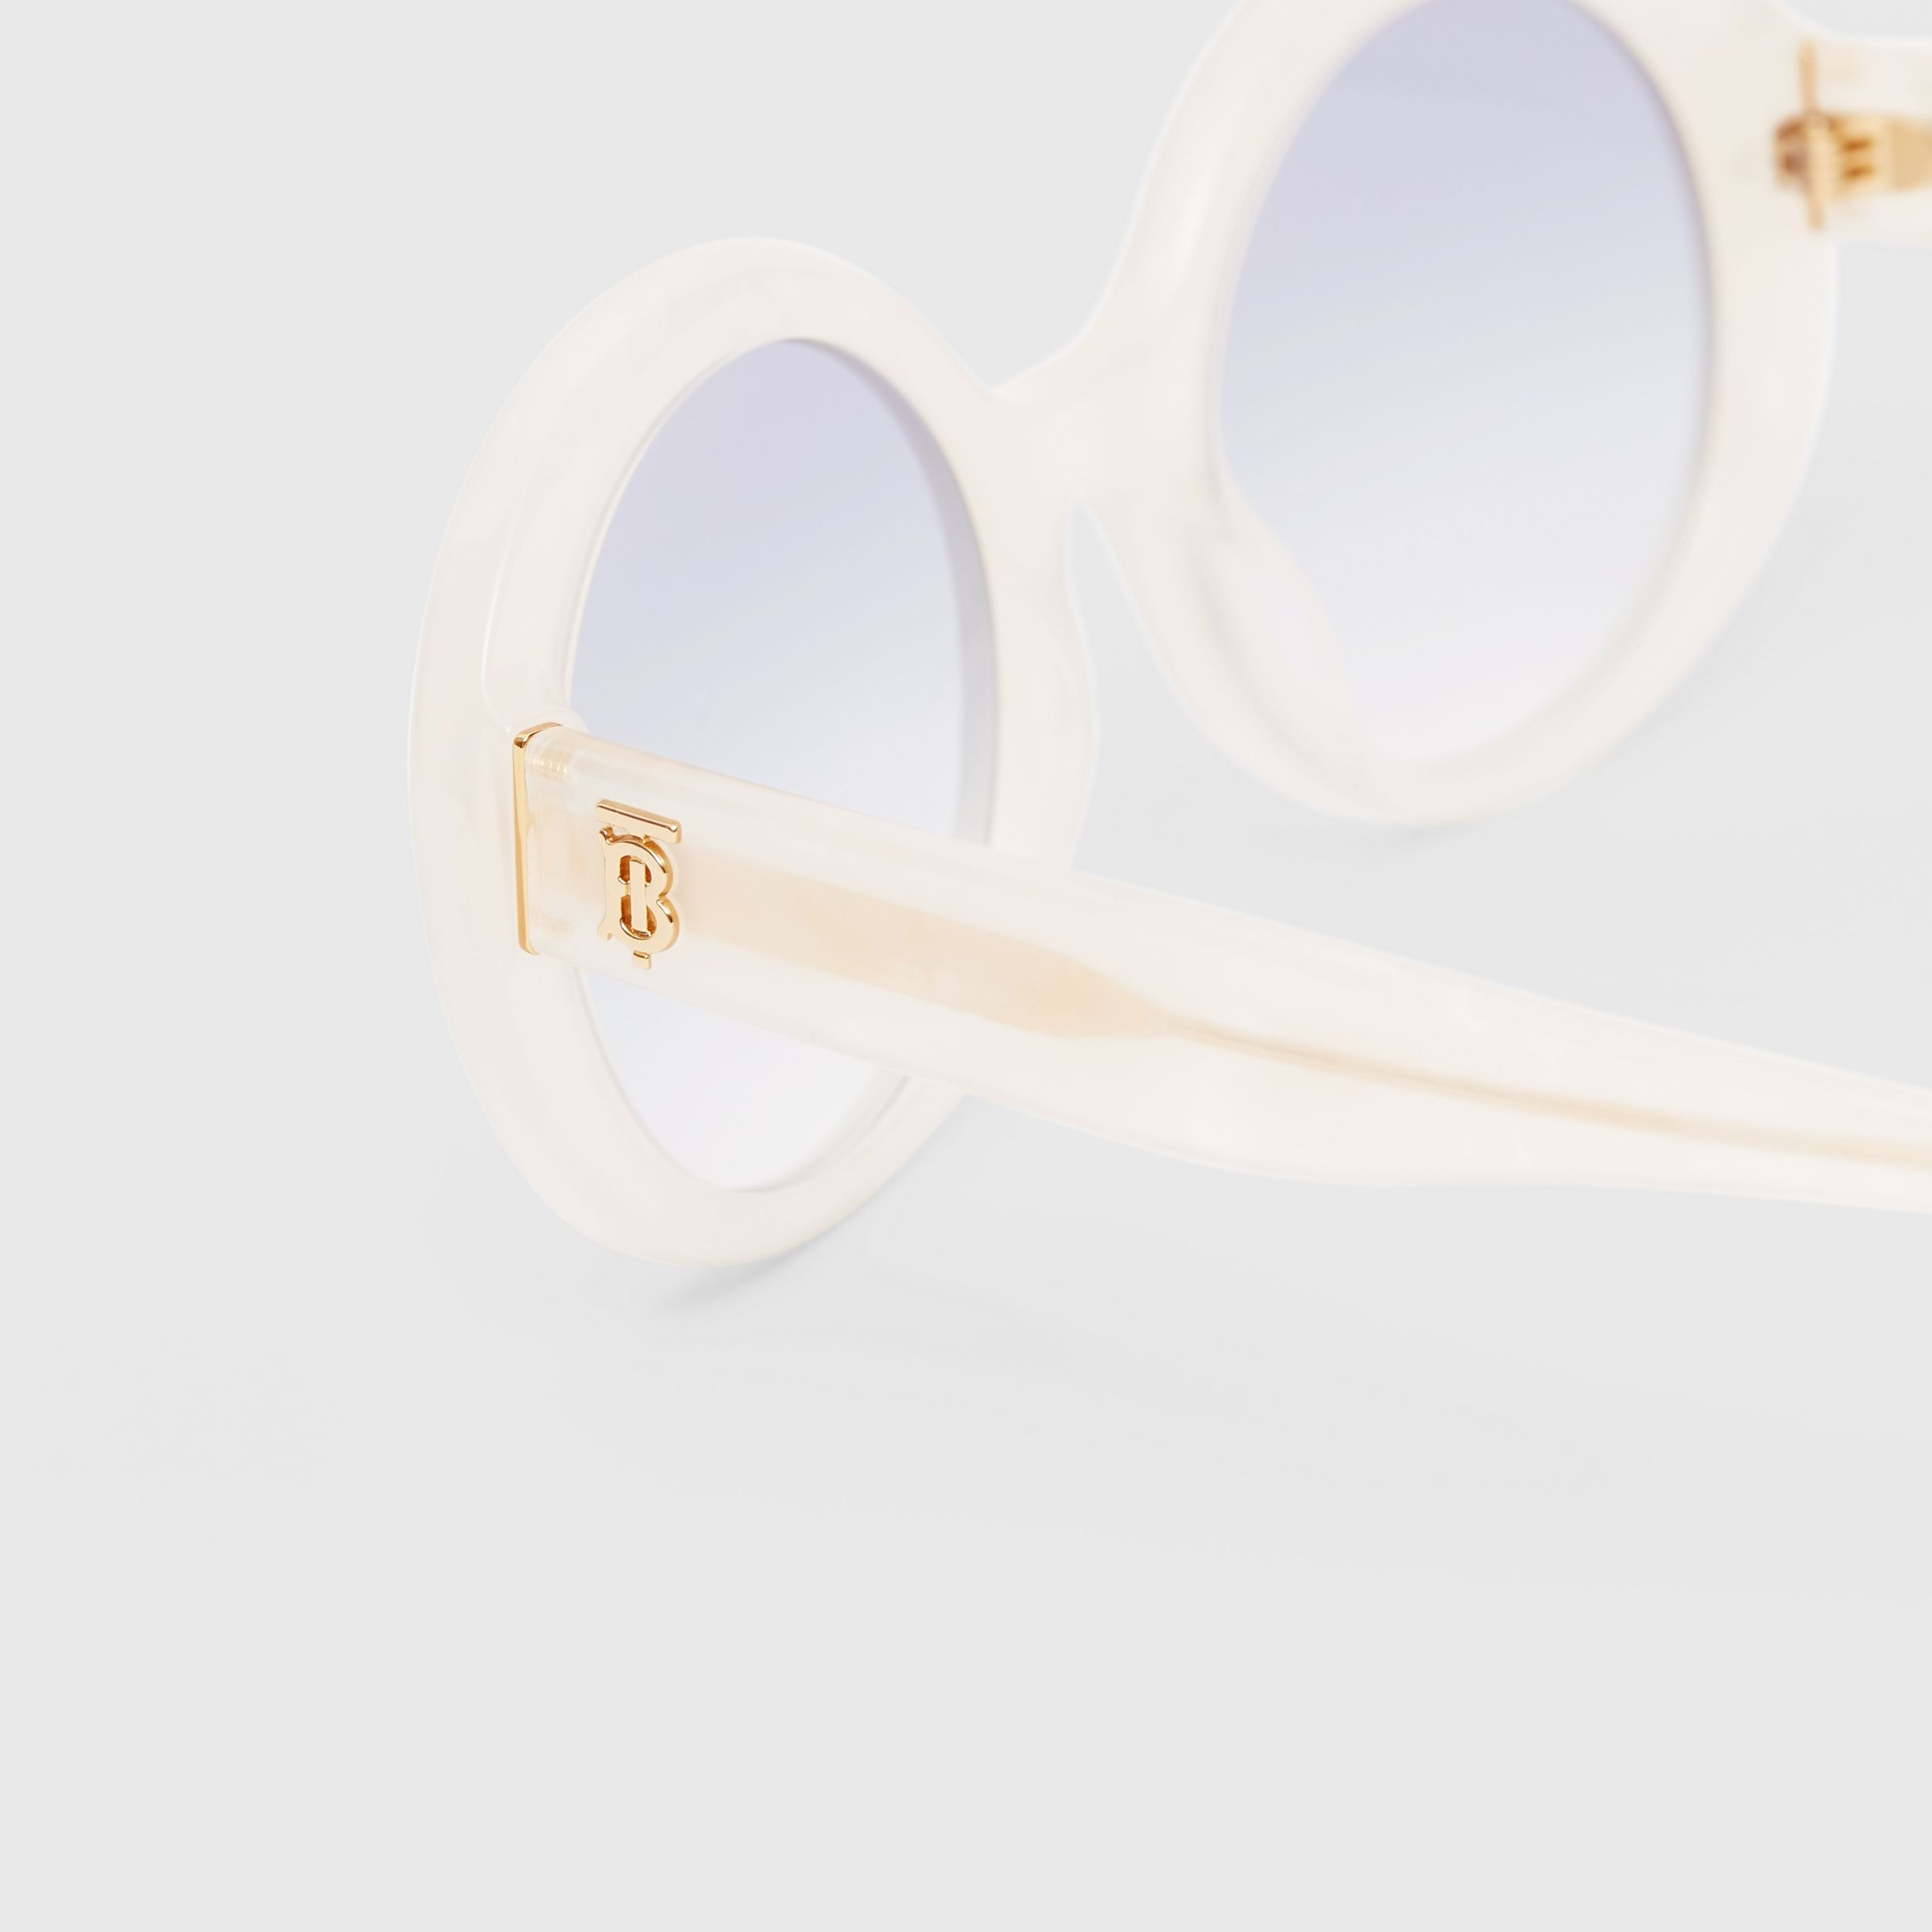 Oversized Round Frame Sunglasses in Pearl - Women | Burberry - 2